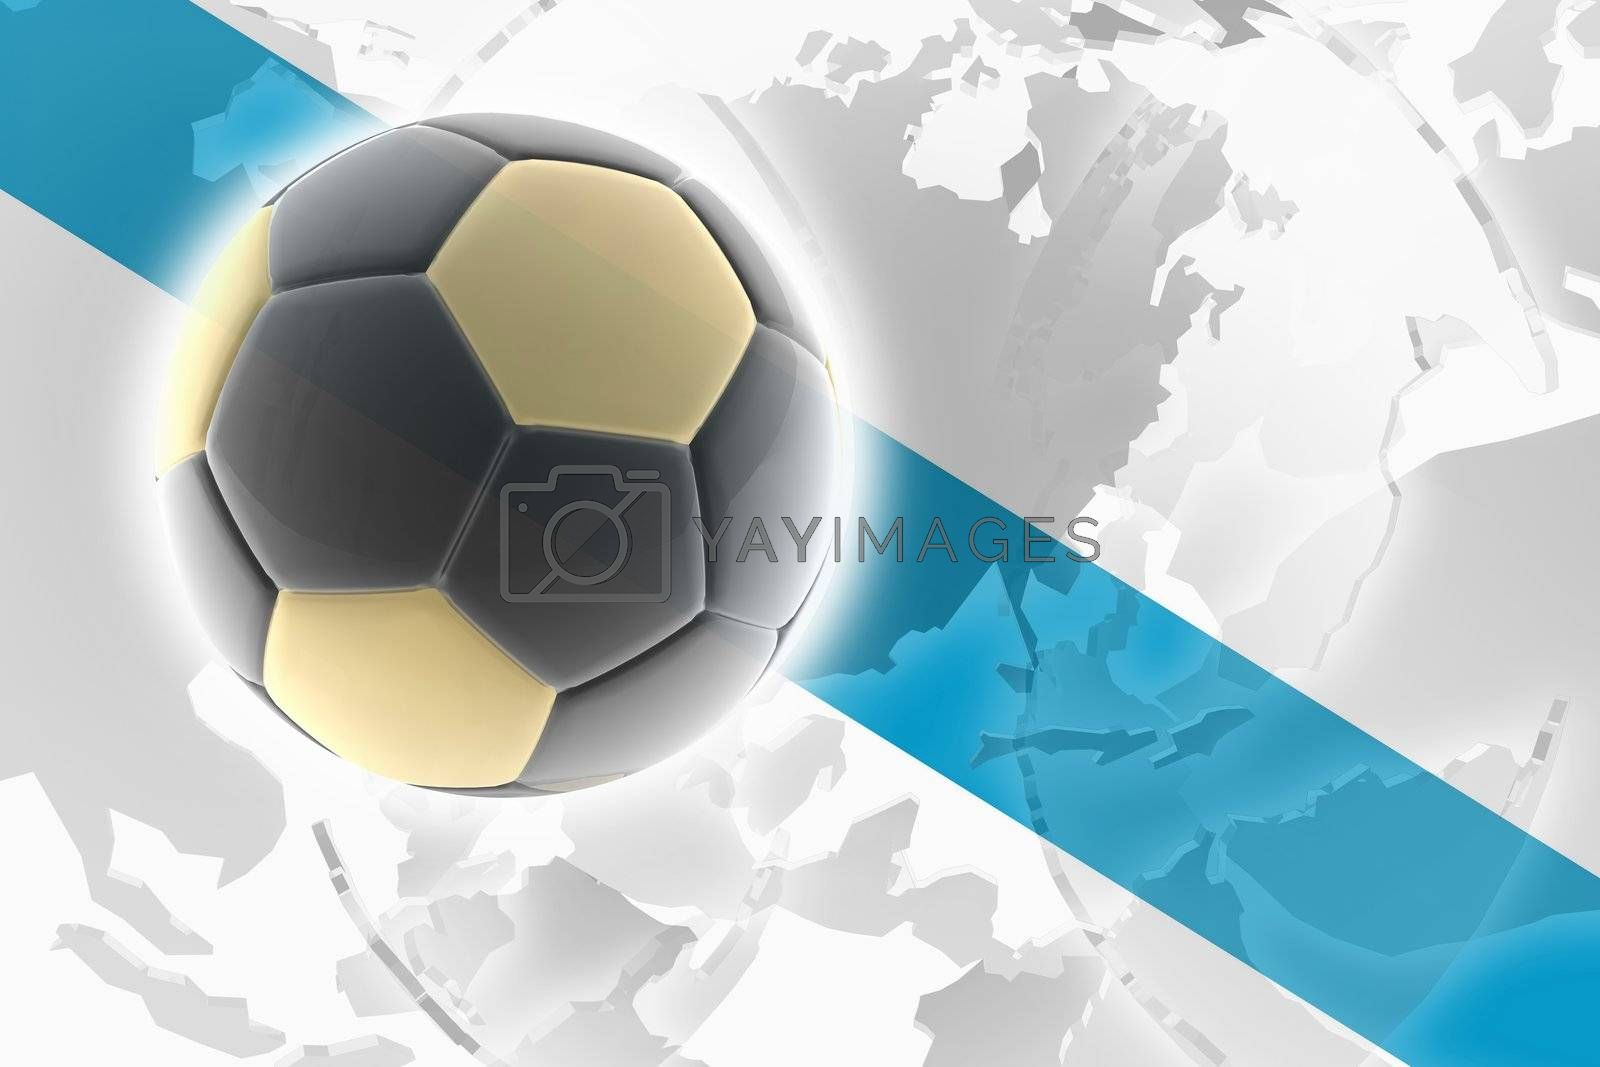 Flag of Galicia Spain, national country symbol illustration sports soccer football